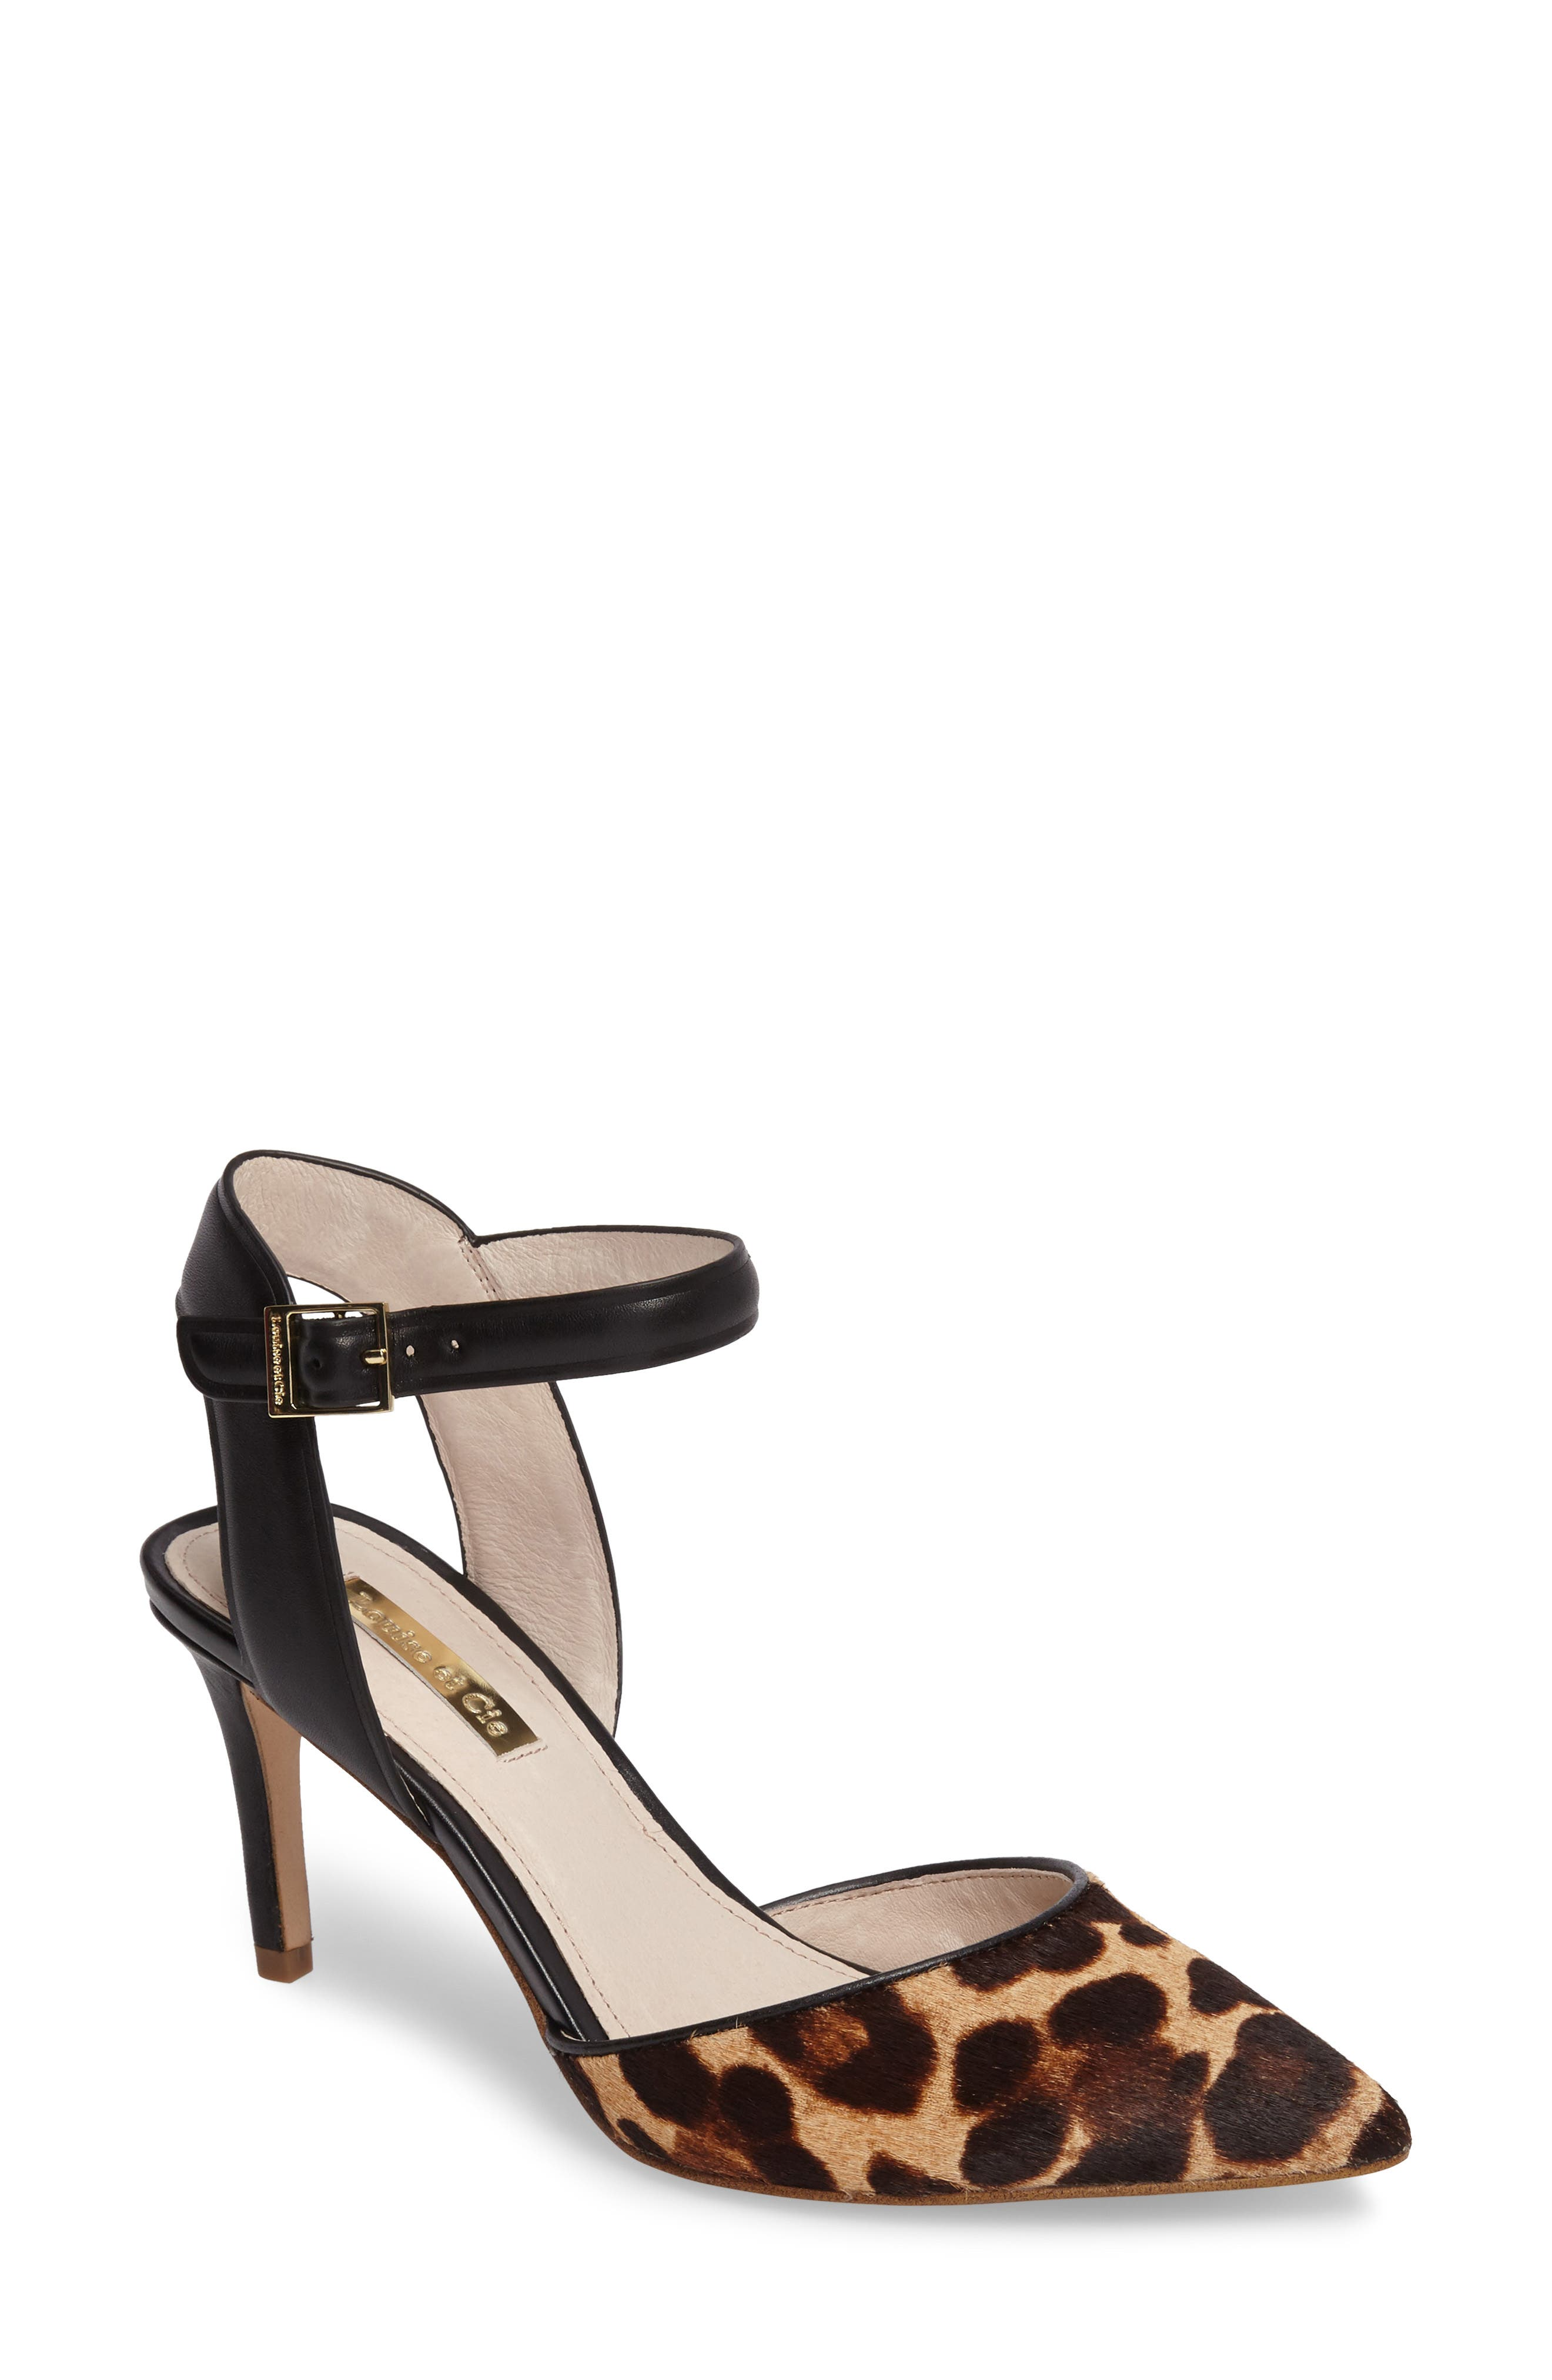 Kota Ankle Strap Pump,                         Main,                         color, Leopard Print Calf Hair